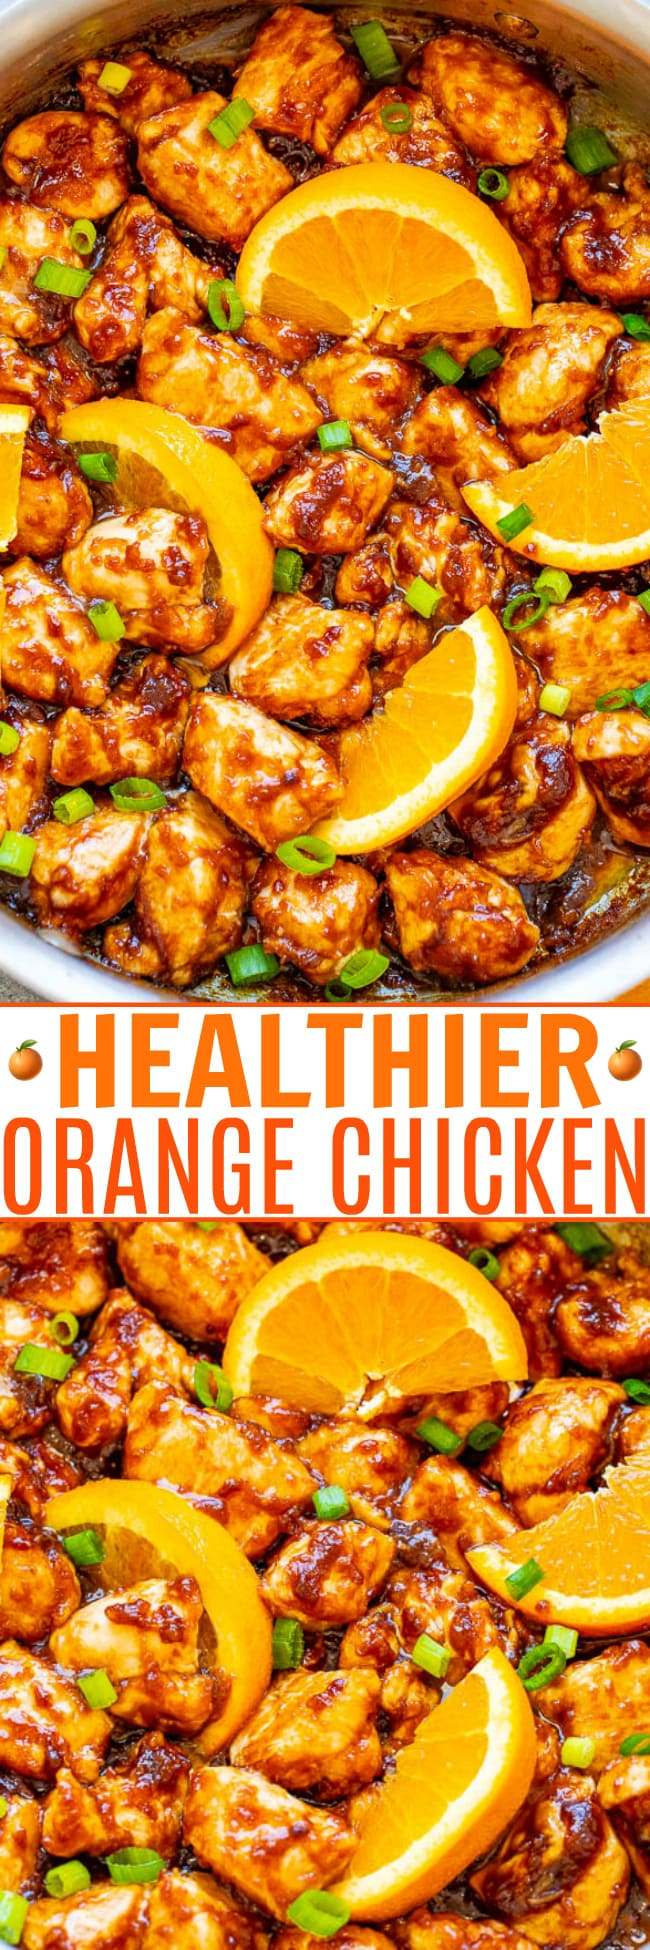 Healthier Orange Chicken – Stop calling for takeout or going to the mall food court and make this HEALTHIER orange chicken at home in less than 10 minutes!! EASY, authentic, and so INCREDIBLE that you'll never miss the fat and calories!!